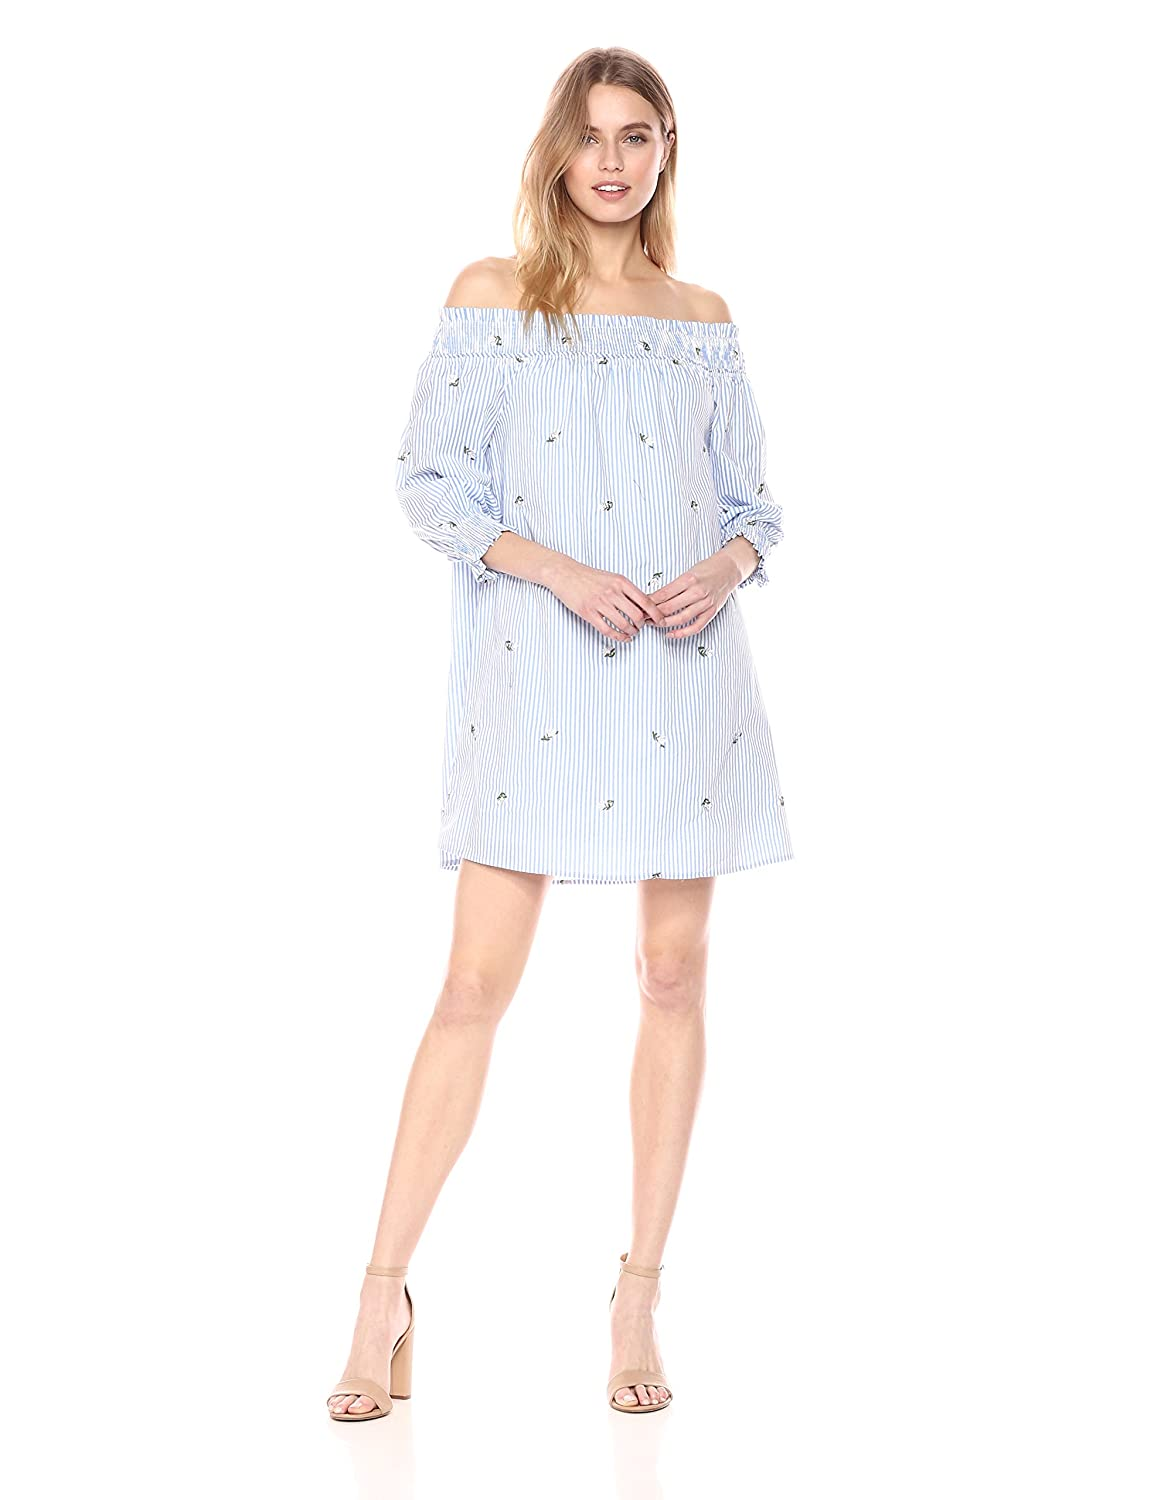 bluee ivory stripe J.O.A. Womens LACE UP Front Off The Shoulder Smocked Floral Dress Casual Dress